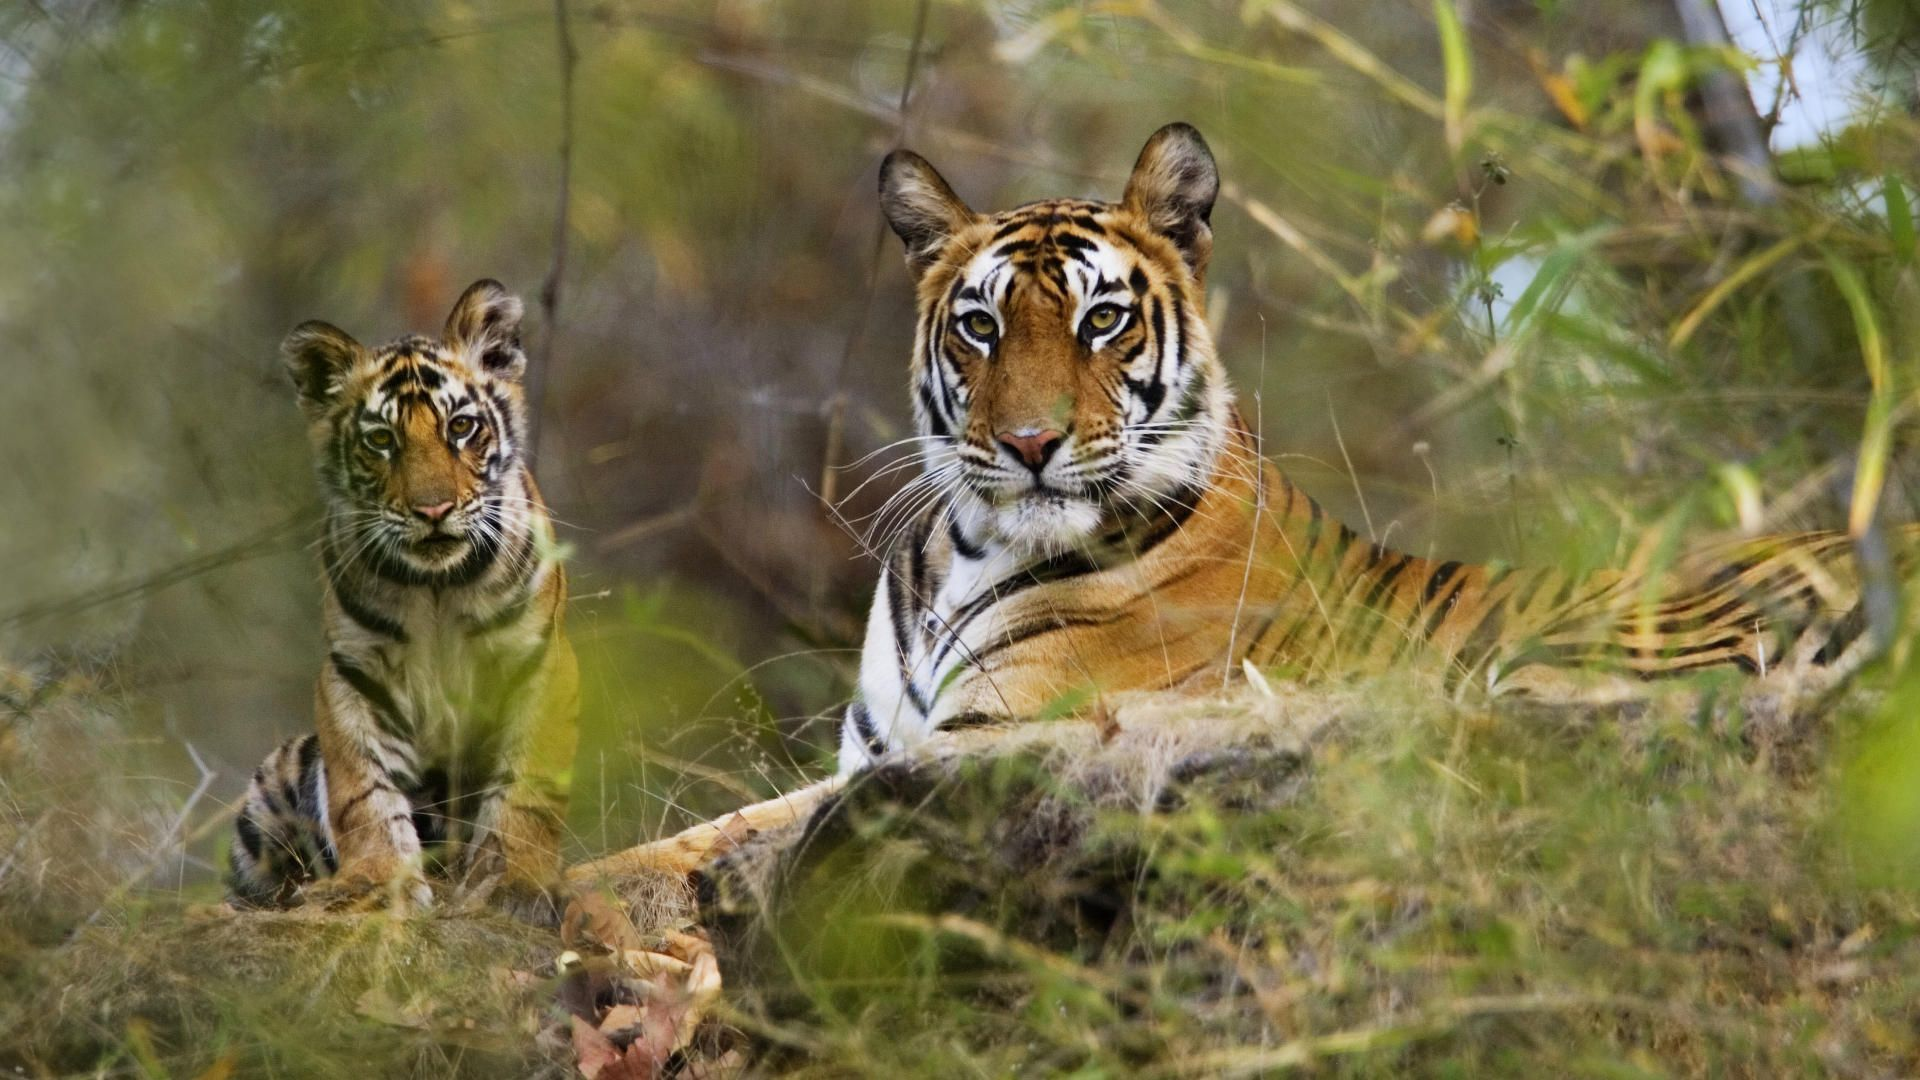 Tigers in the National Park